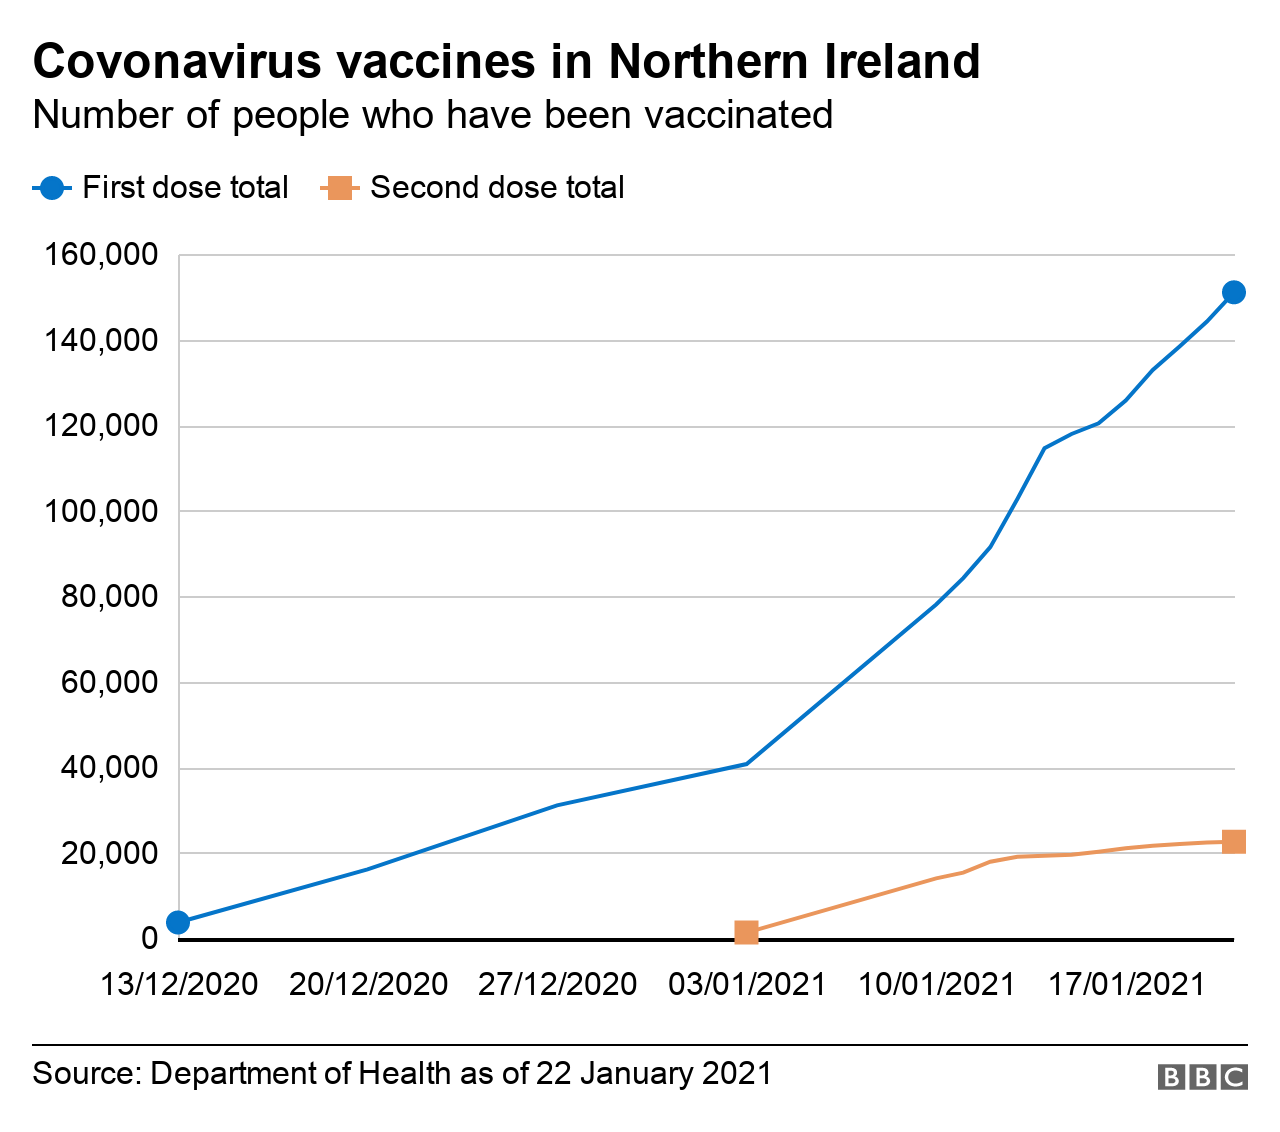 A graph showing the number of people who have received a Covid-19 vaccine in Northern Ireland